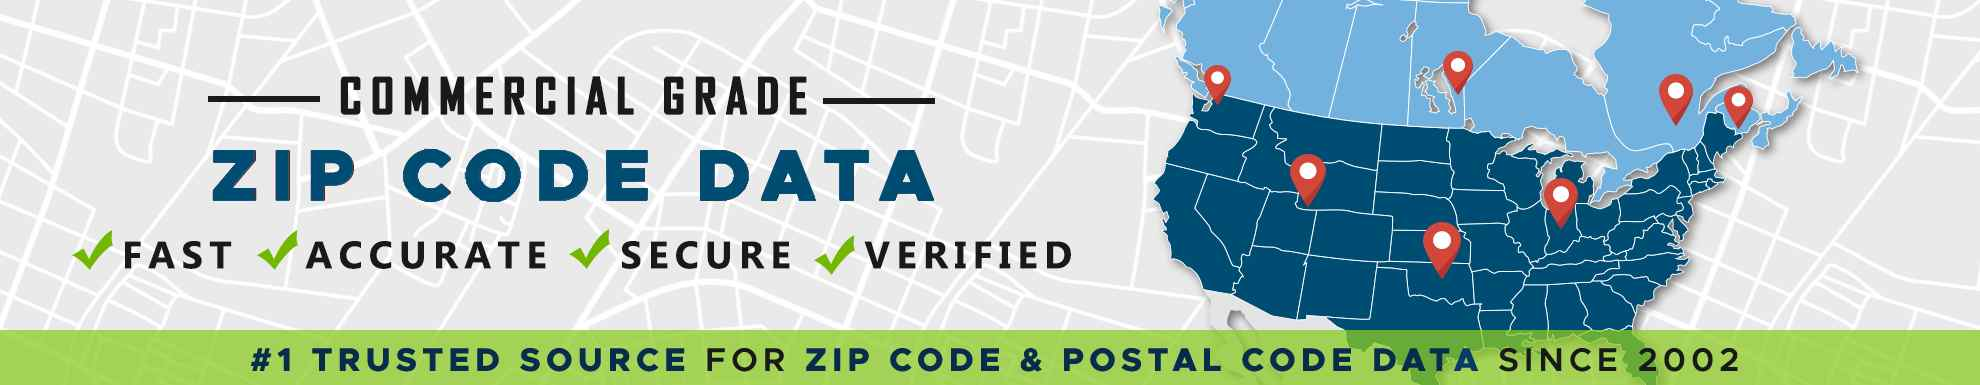 Zip Code Data and Postal Code Data